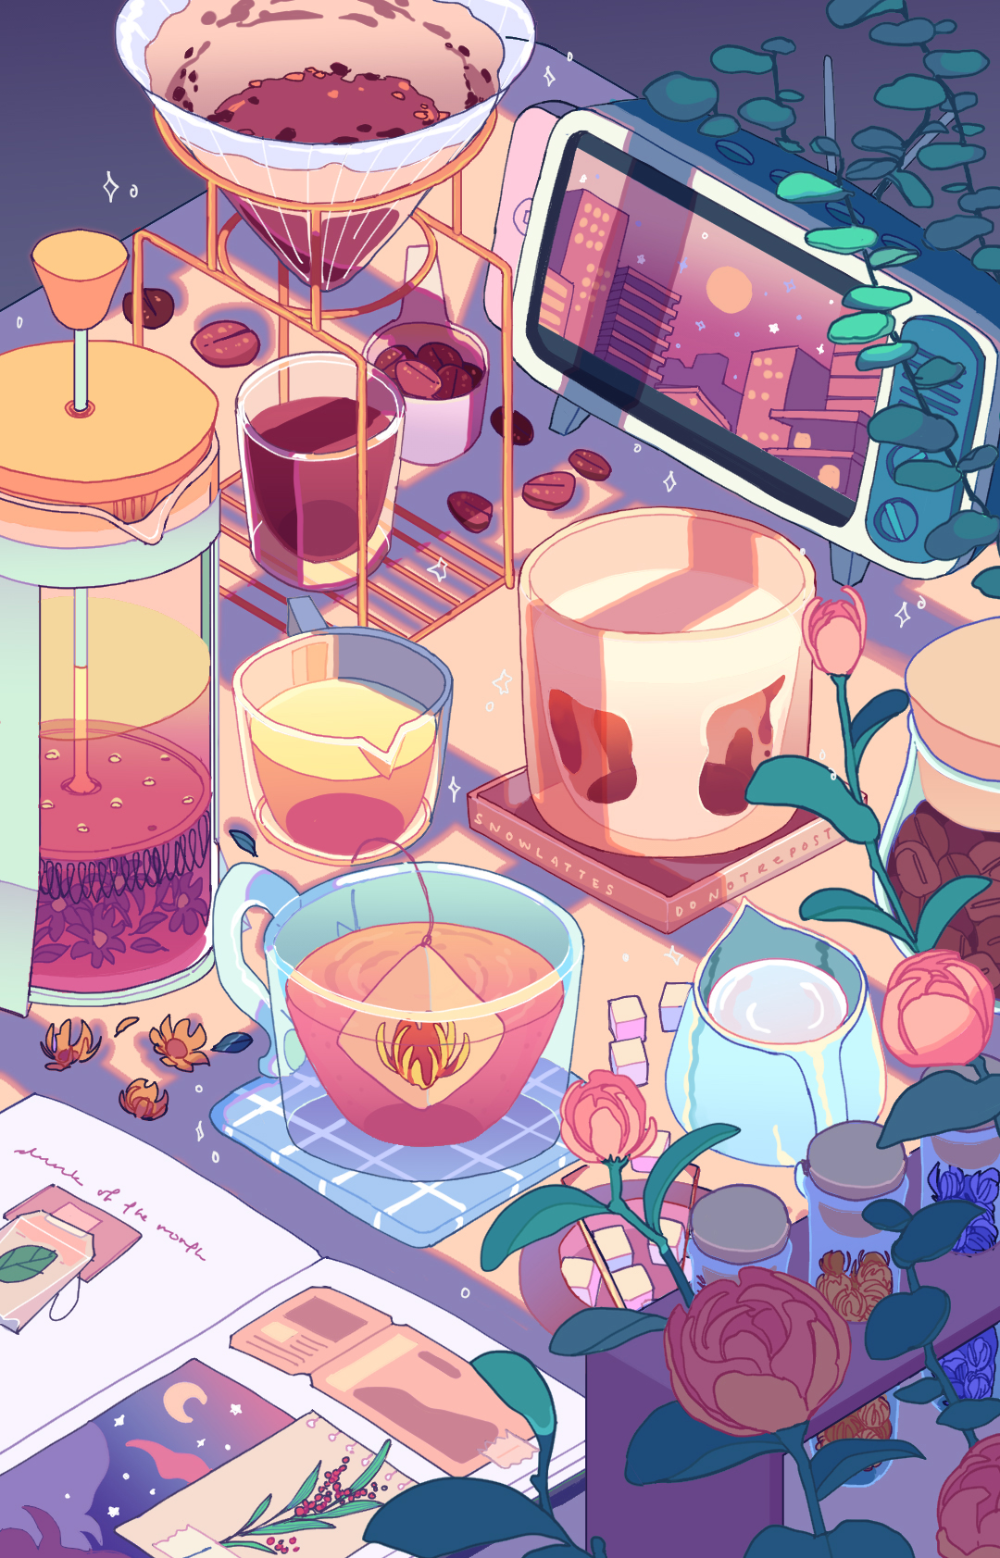 snow | 🌸 spring store - currently packing on Twitter